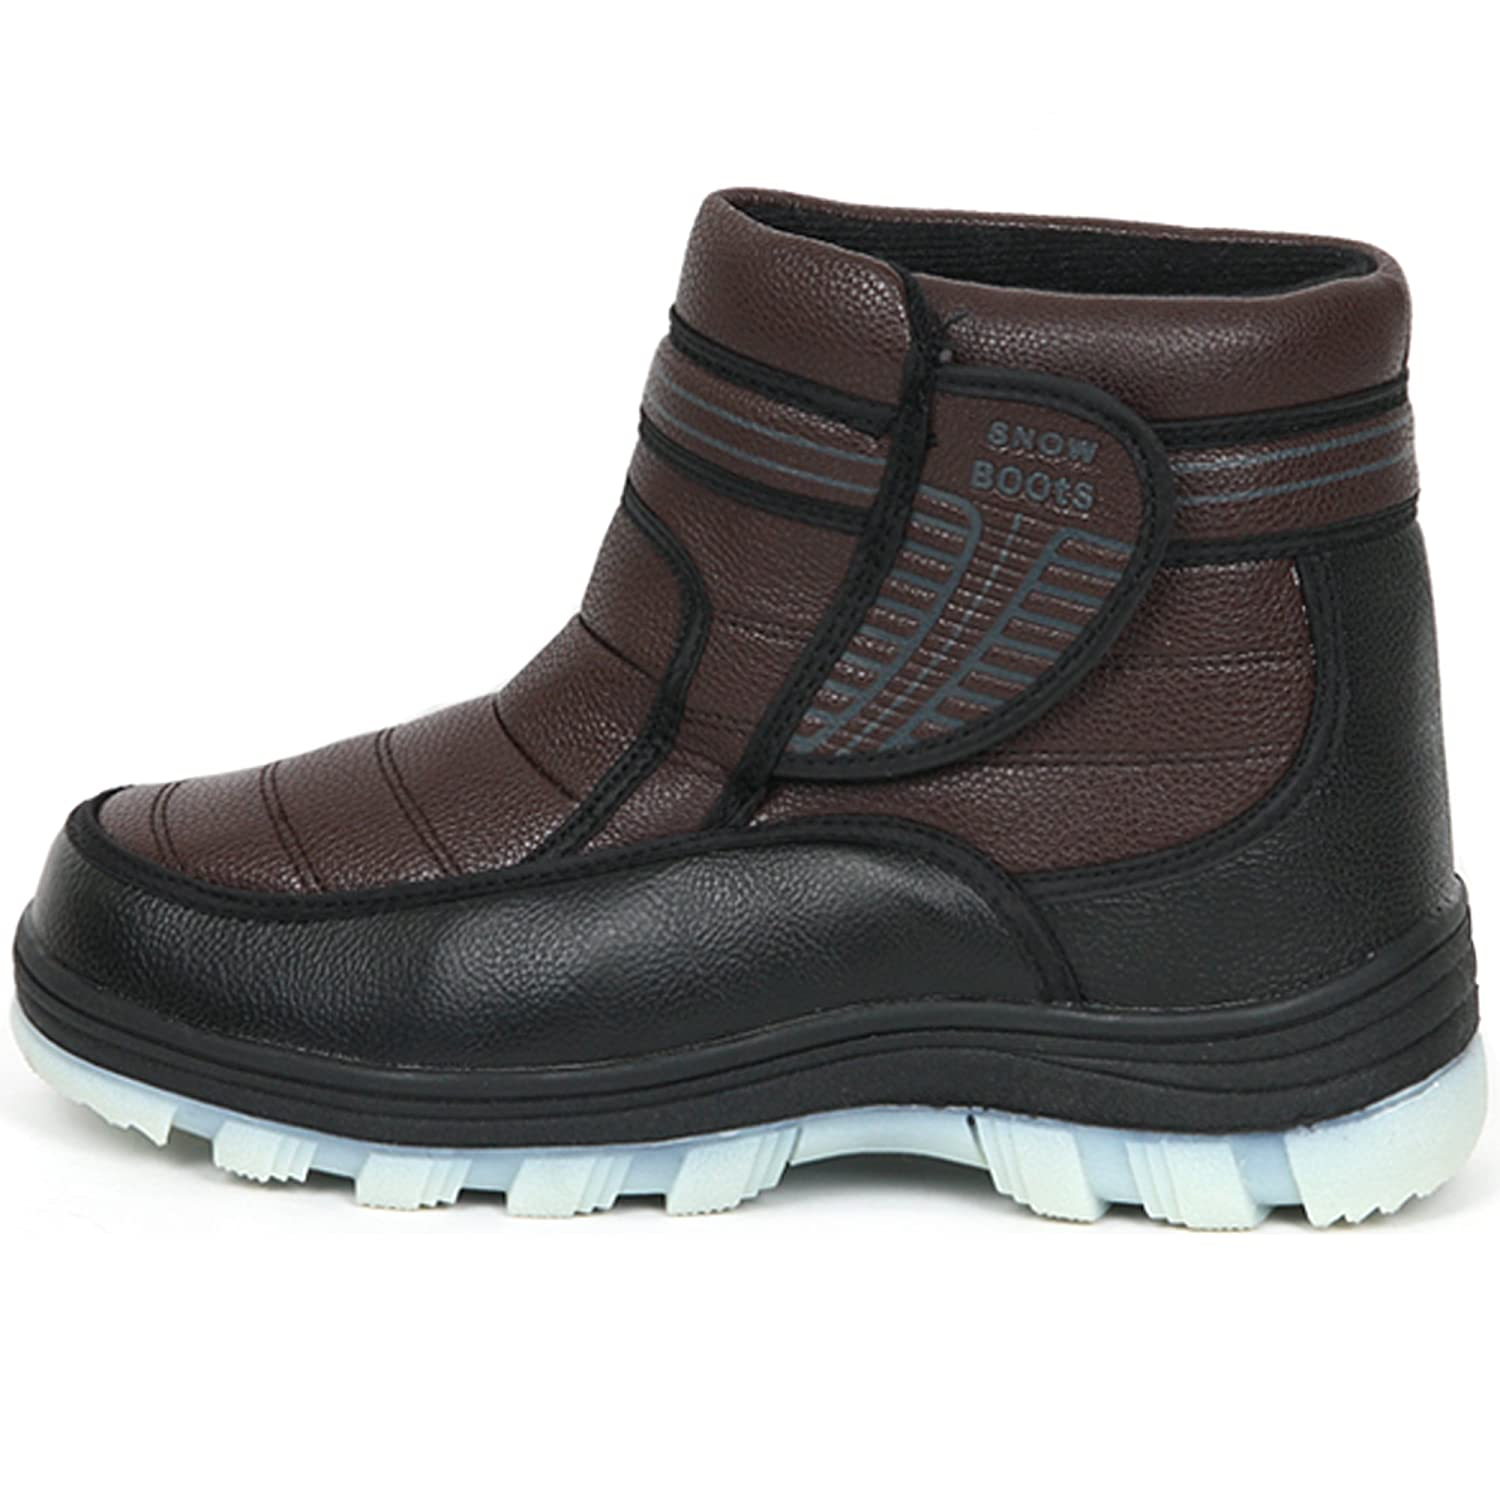 New Black Brown Mens Winter Comfort Velcro Ankle Boots Snow Warm Shoes